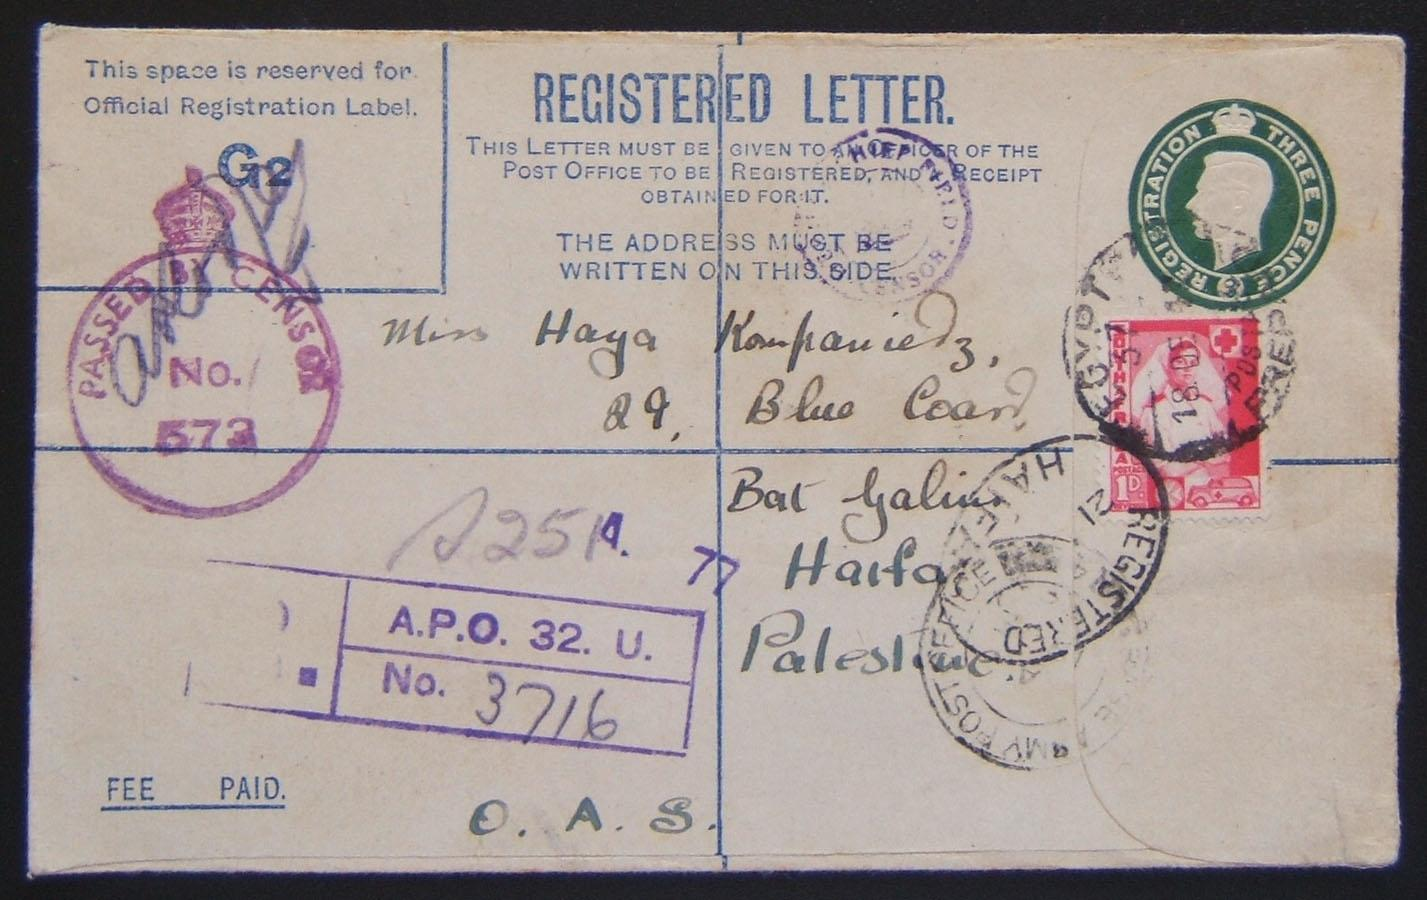 South African [Jewish?] soldier's letter to Jewish civilian HAIFA using 1939 British Army 3d KGVI reg. envelope (Ba BF.02 A2) + 1d SA frank ex APO 32 (Helwan, Egypt - per the R cac